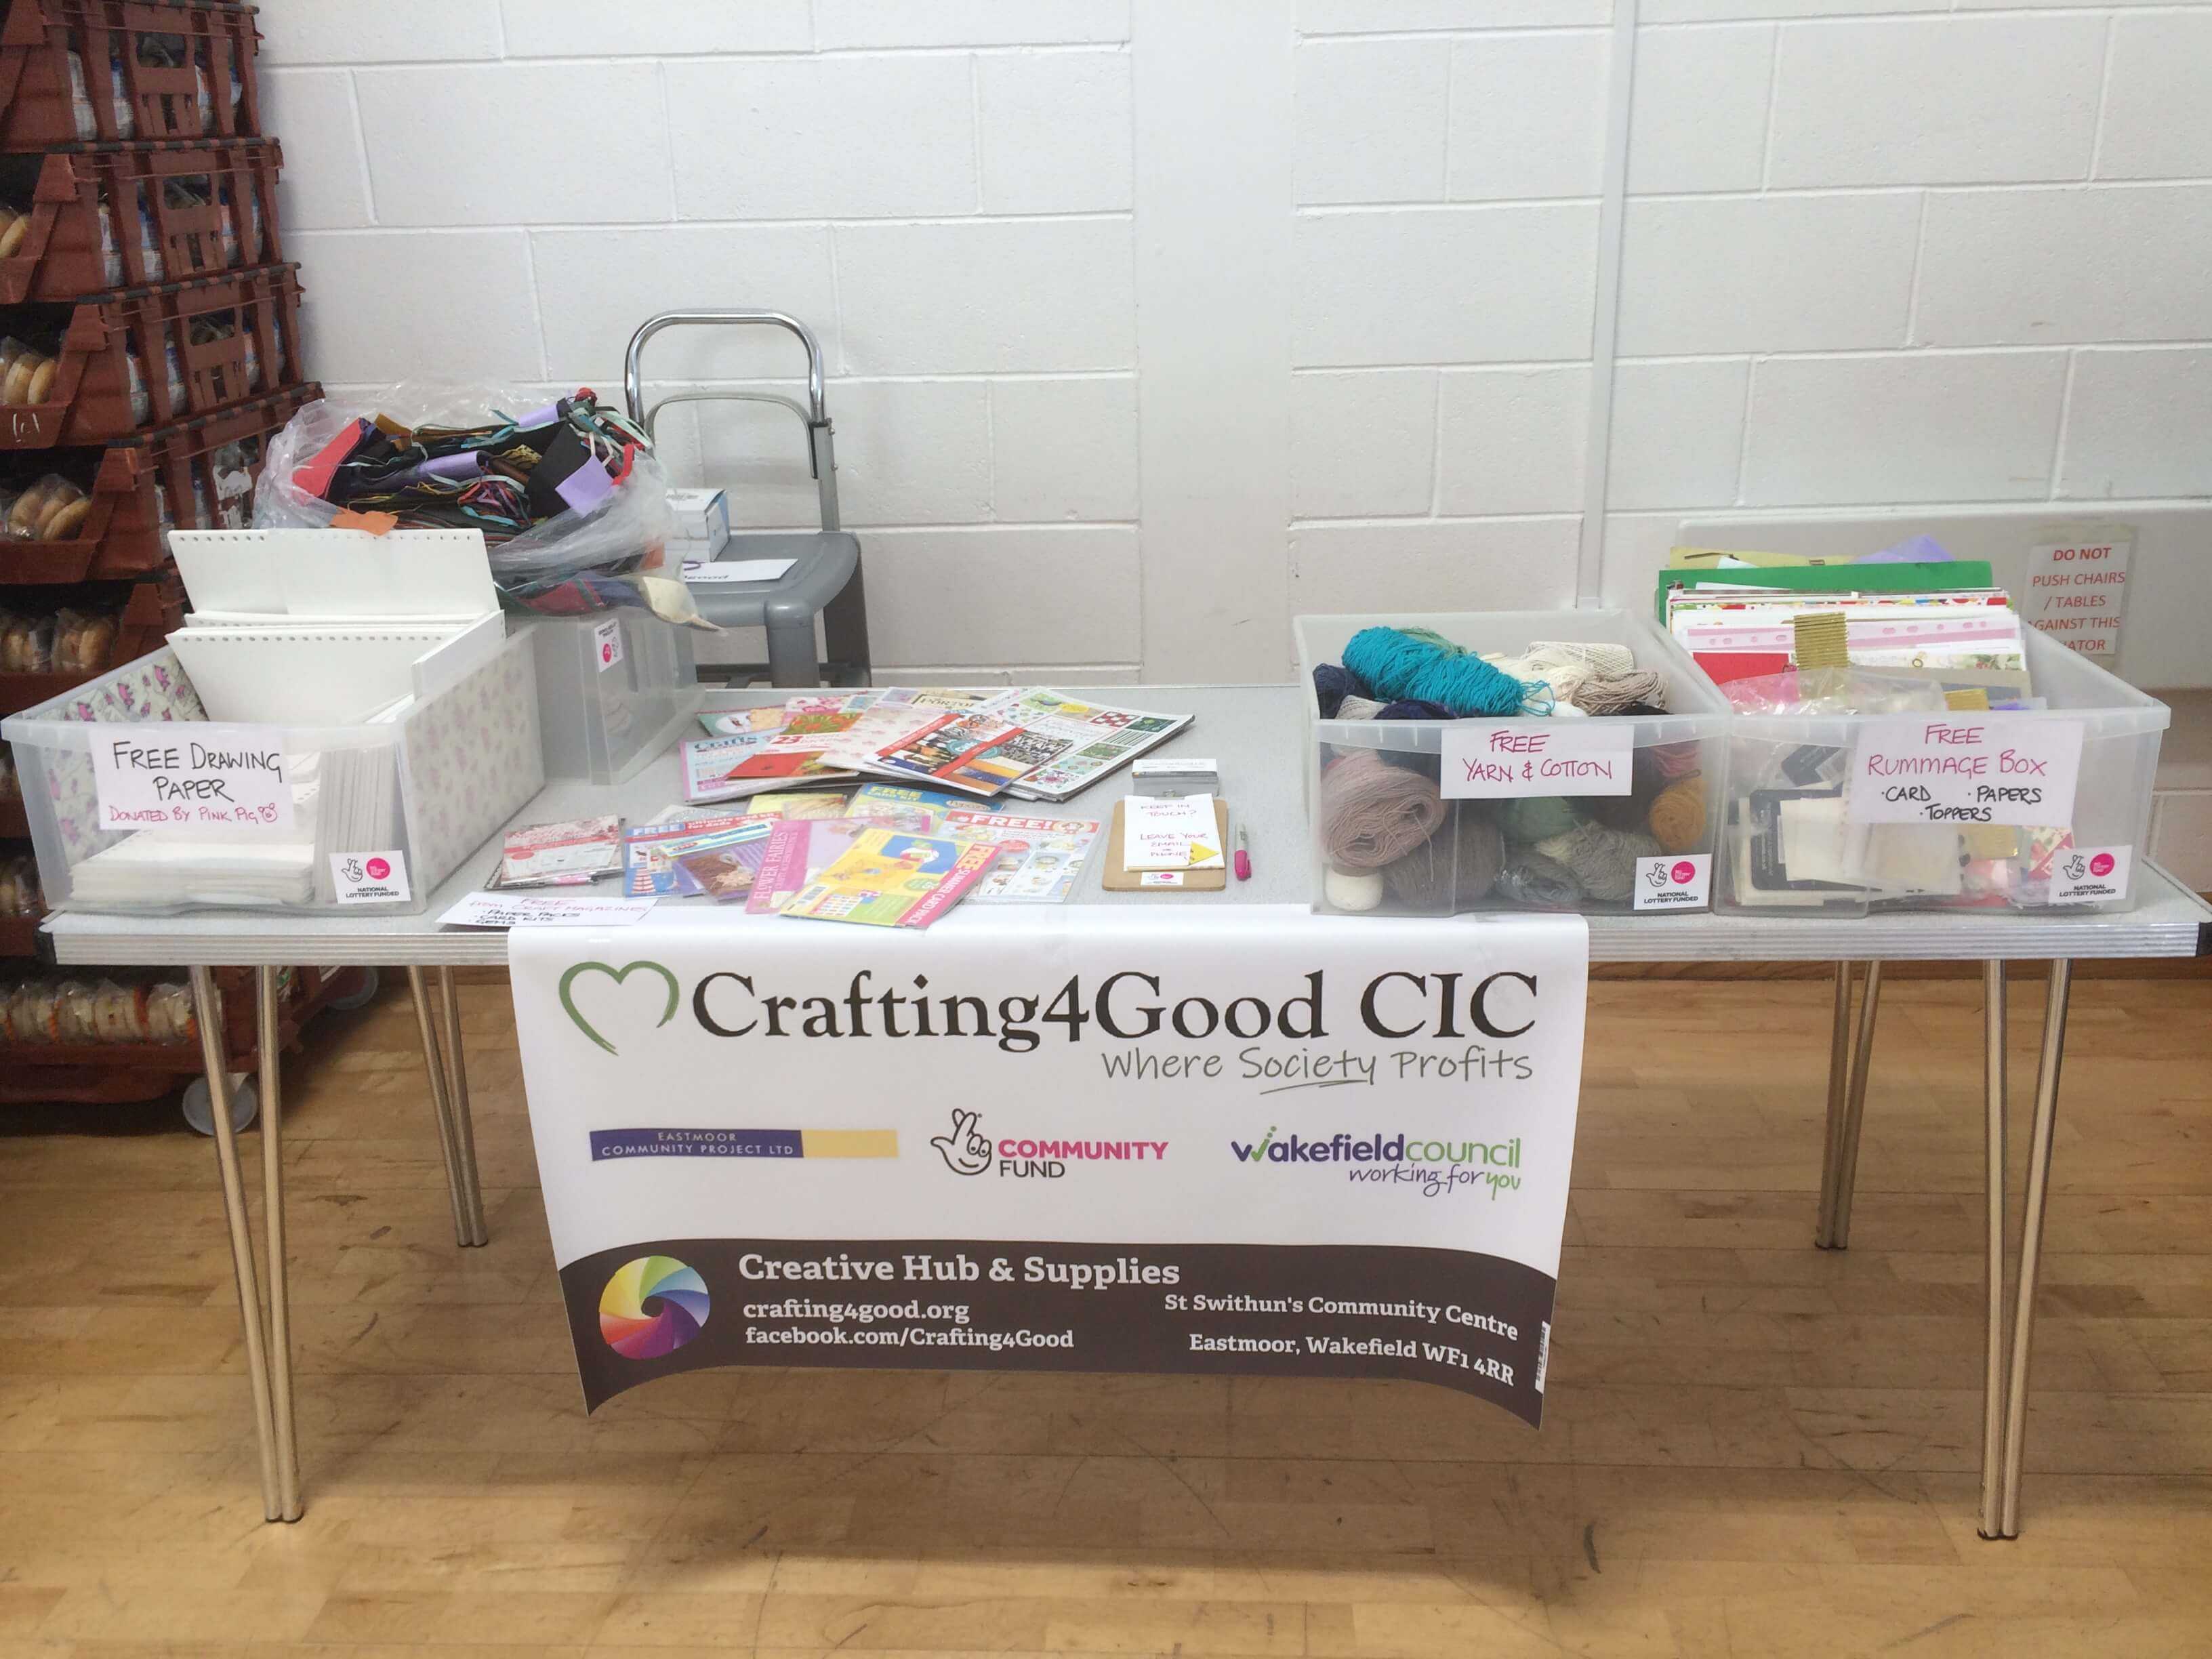 Free craft supplies for a community centre open day and wellbeing event